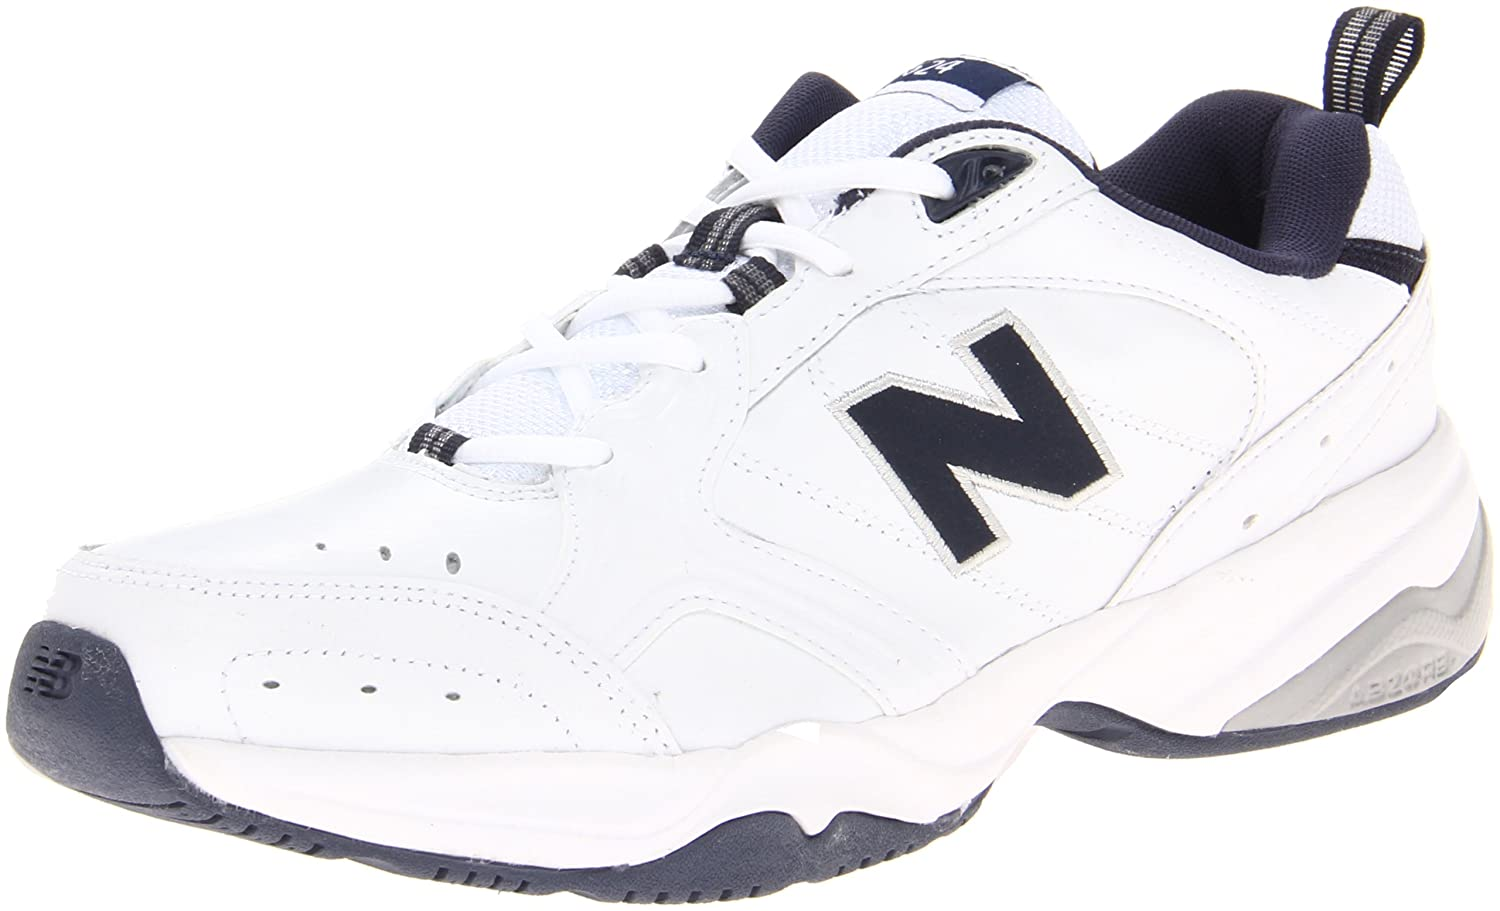 New Balance Mx624 - Hombre 49 2E EU|- White With Navy